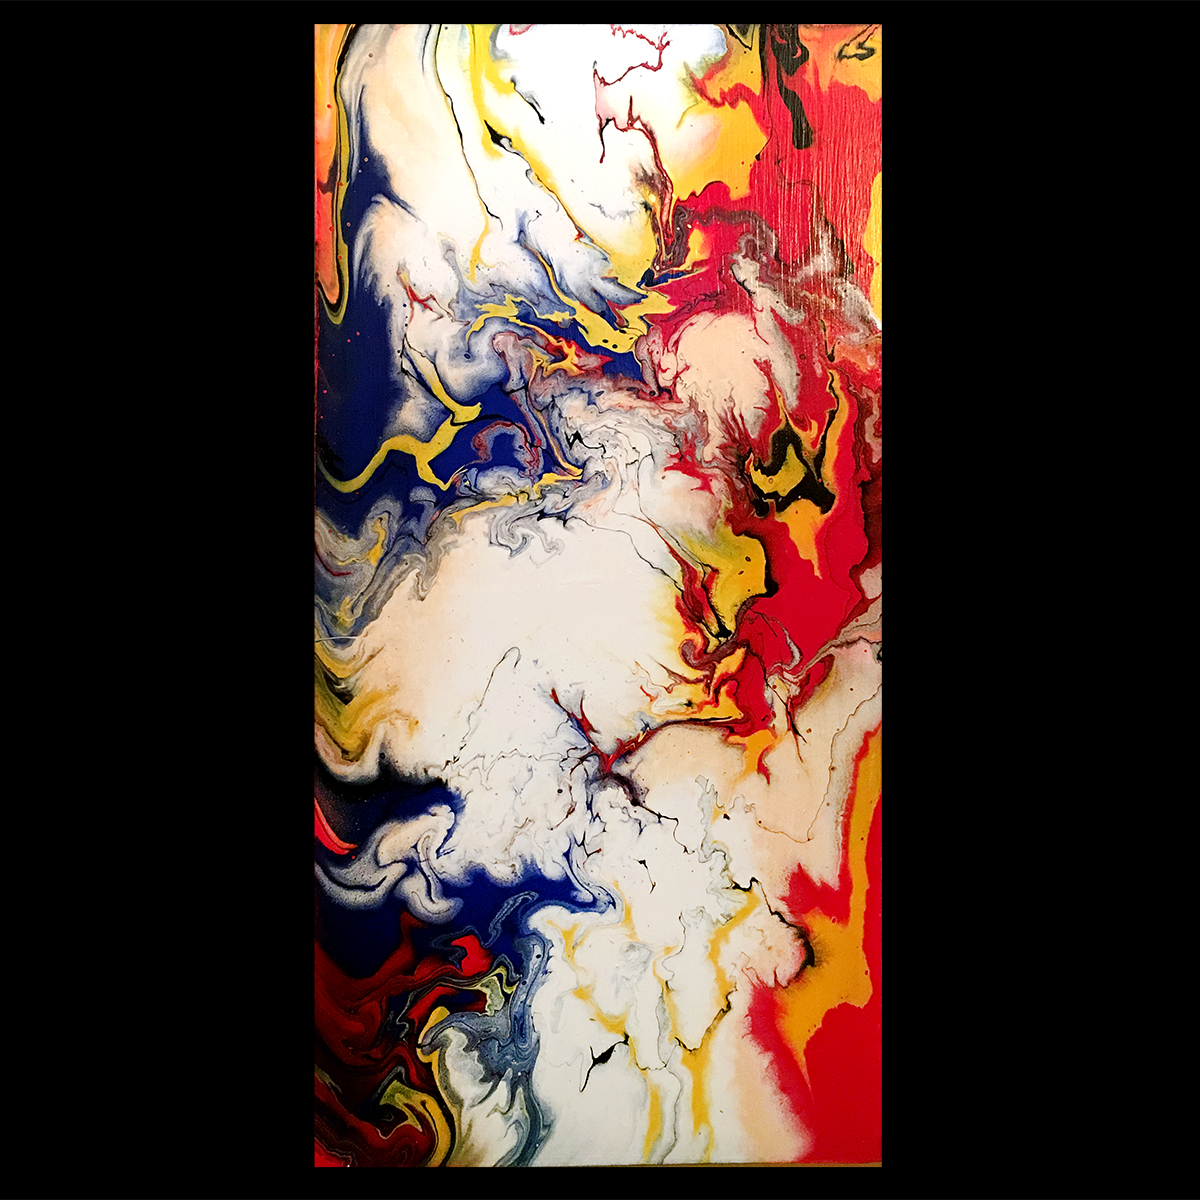 Equus - one of my flow paintings.